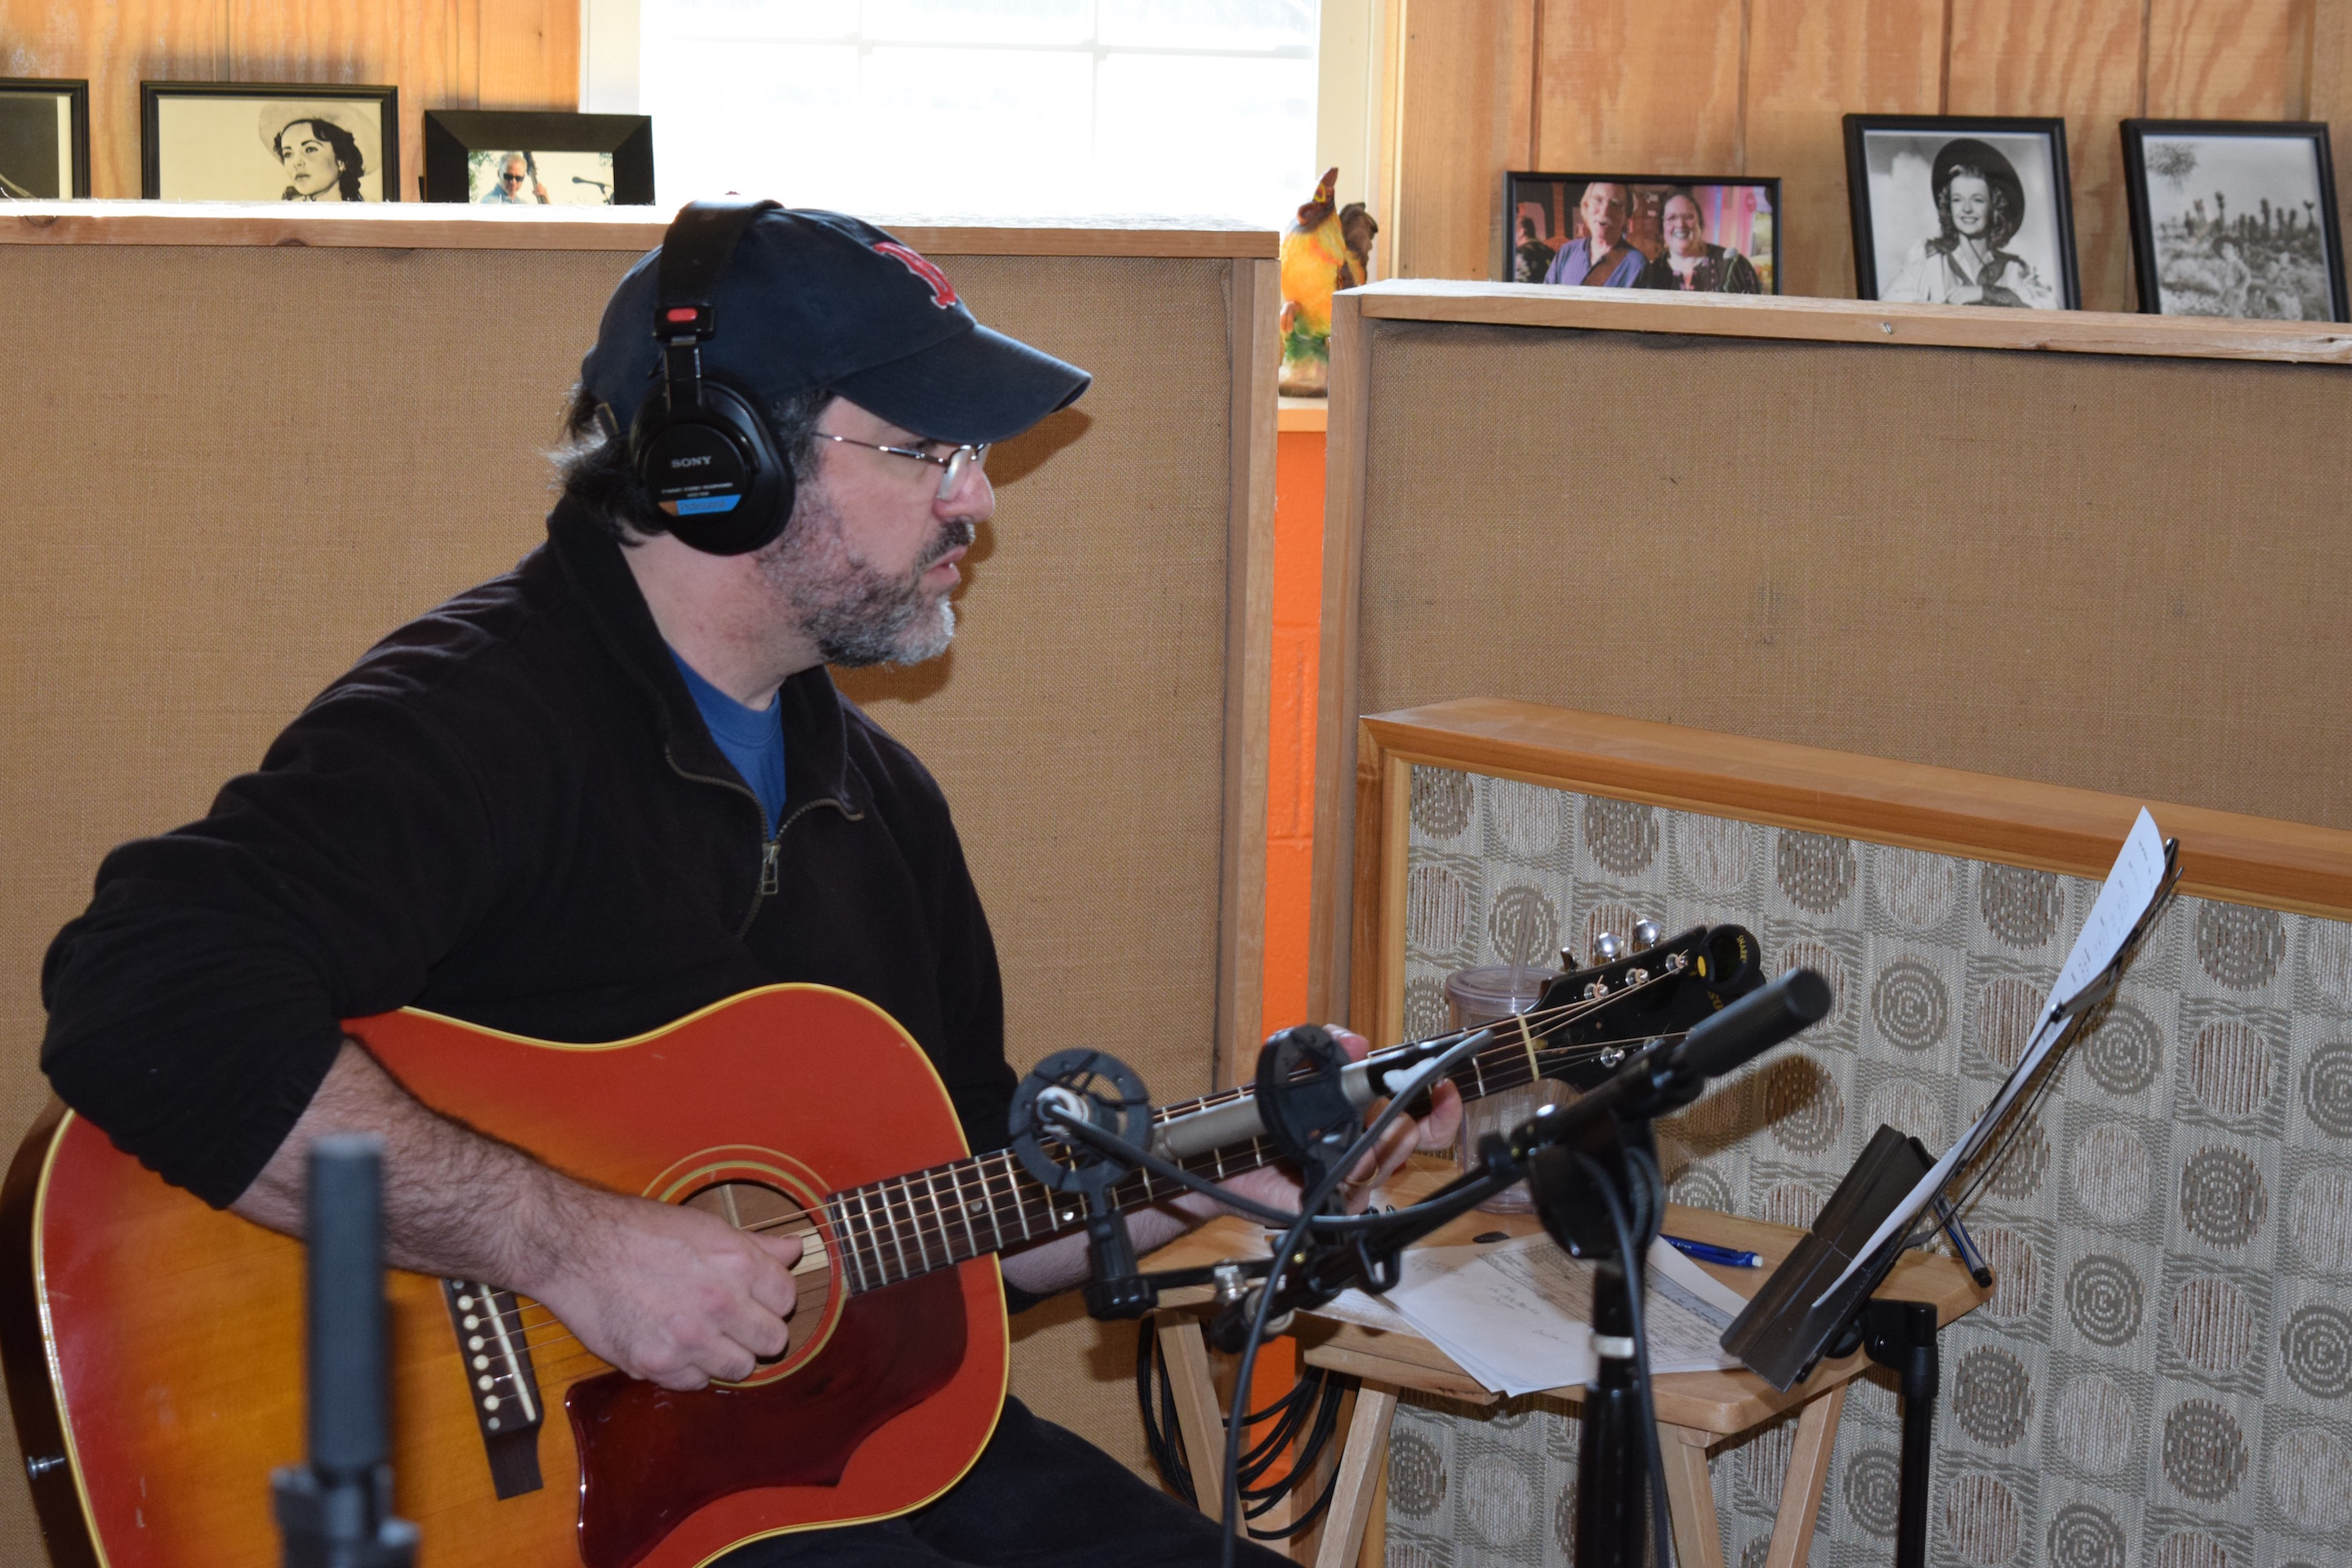 Jon Shain playing guitar in studio